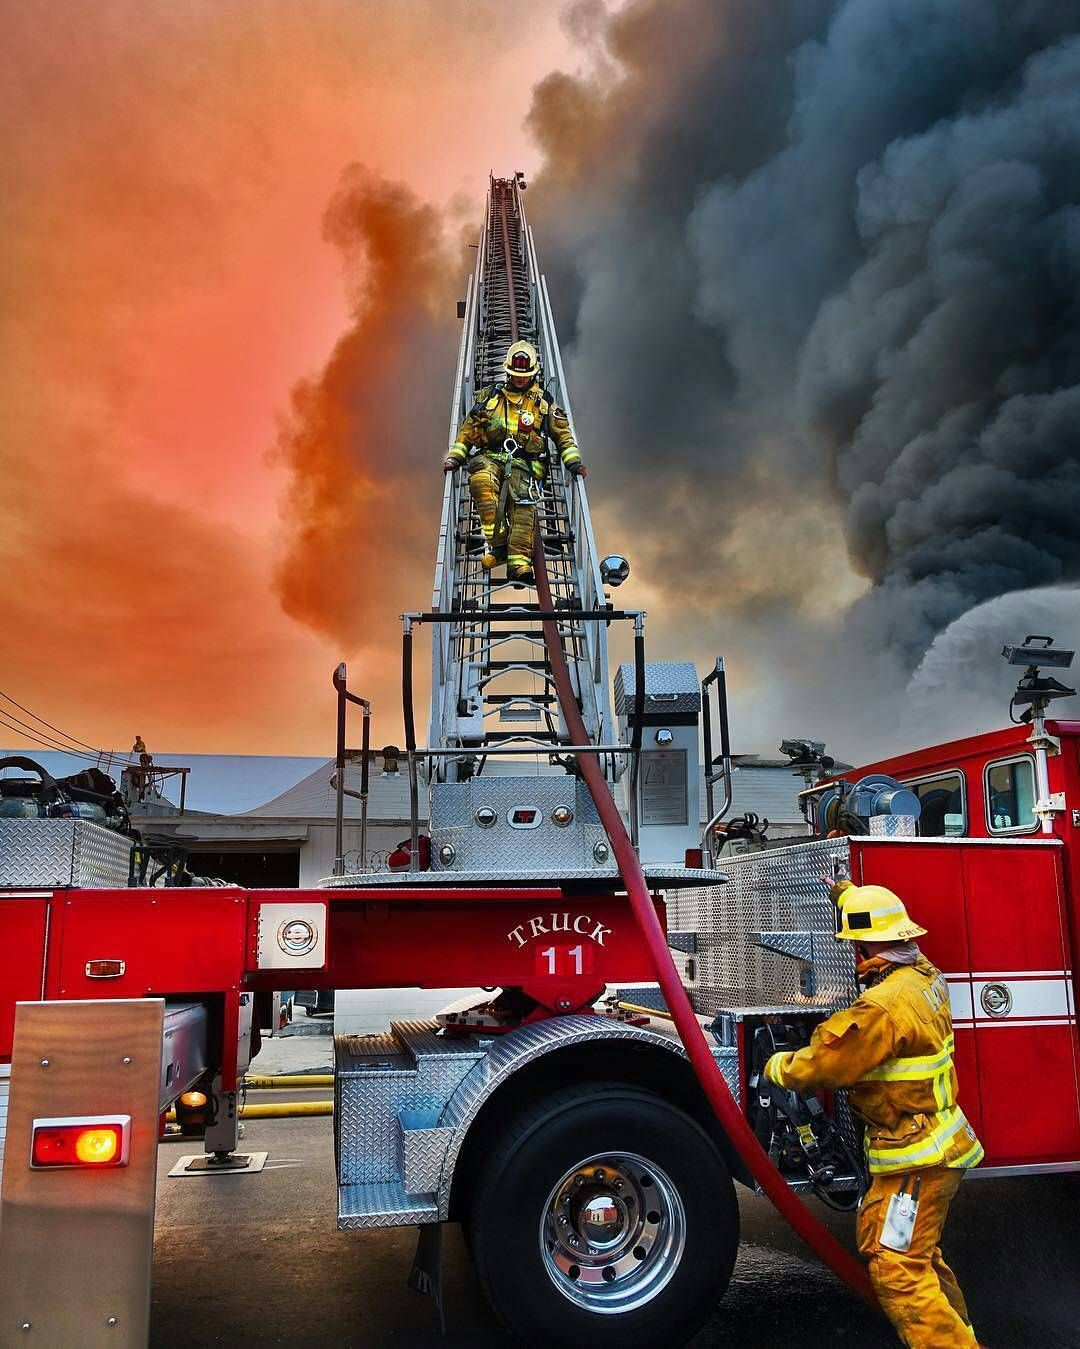 Pin By Luly On Firefighting Fire Trucks Firefighter Pictures